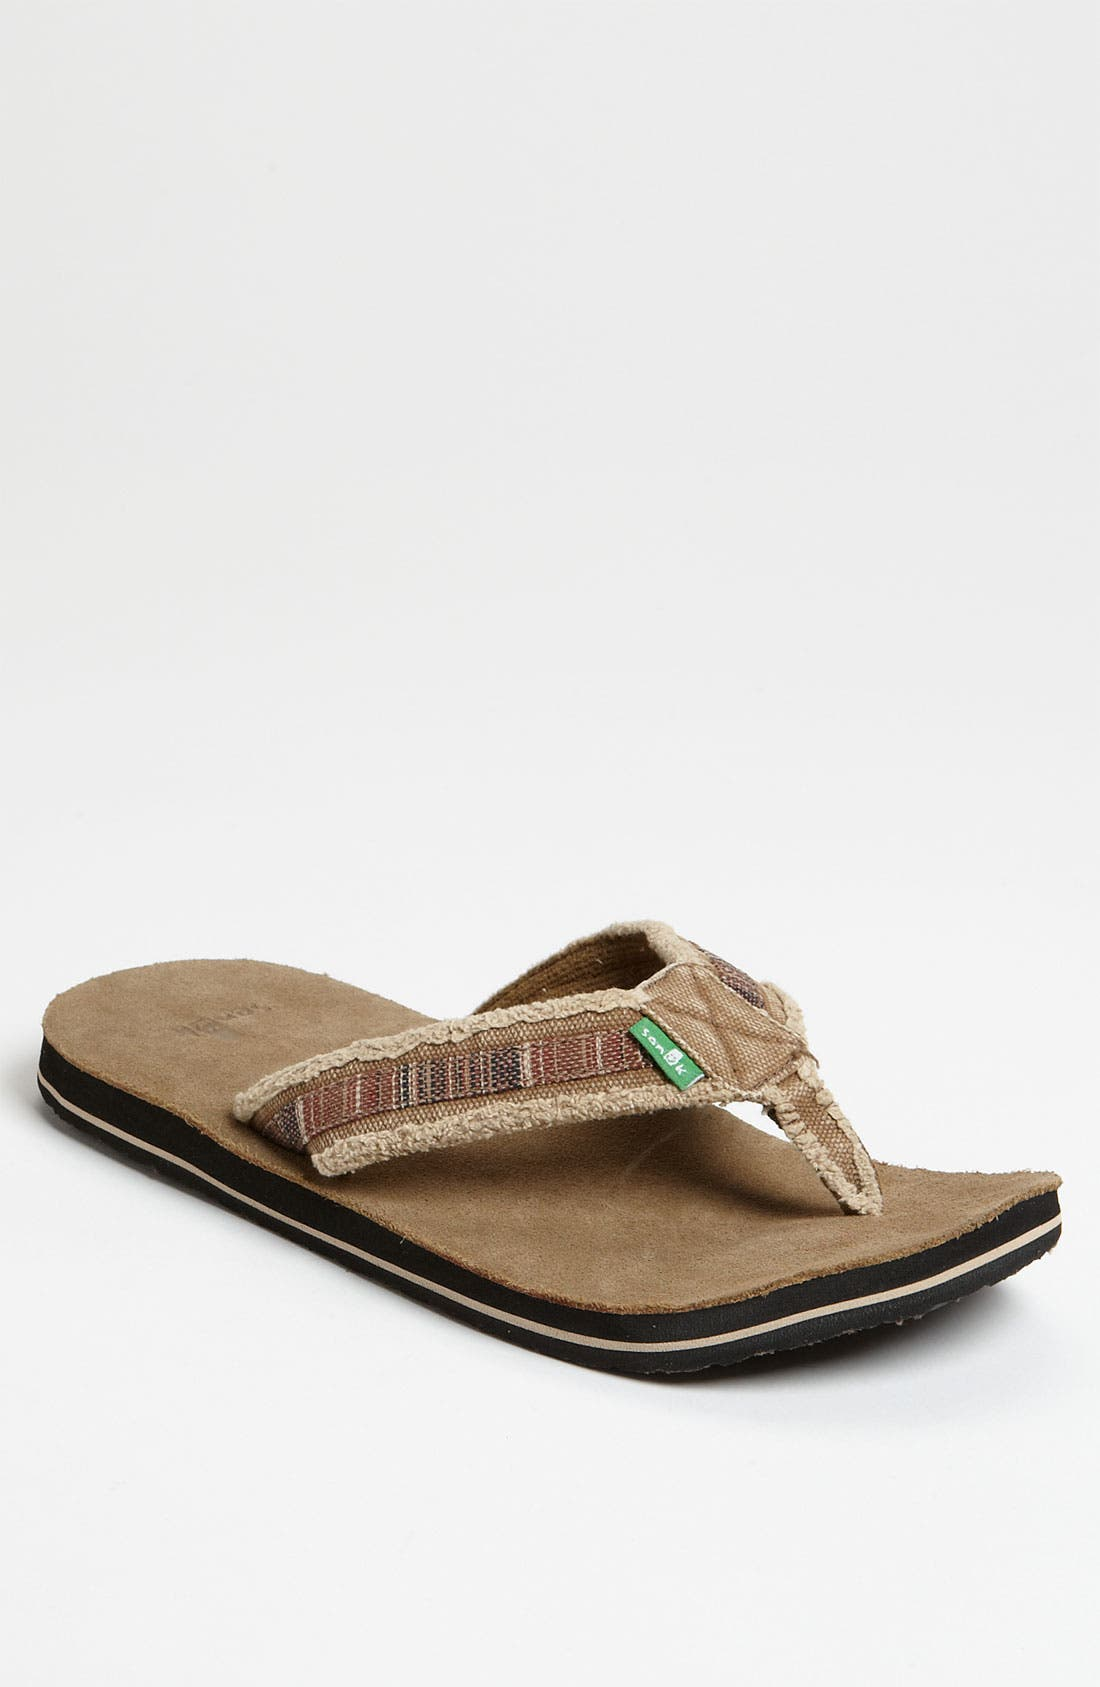 Main Image - Sanuk 'Fraid So' Flip Flop